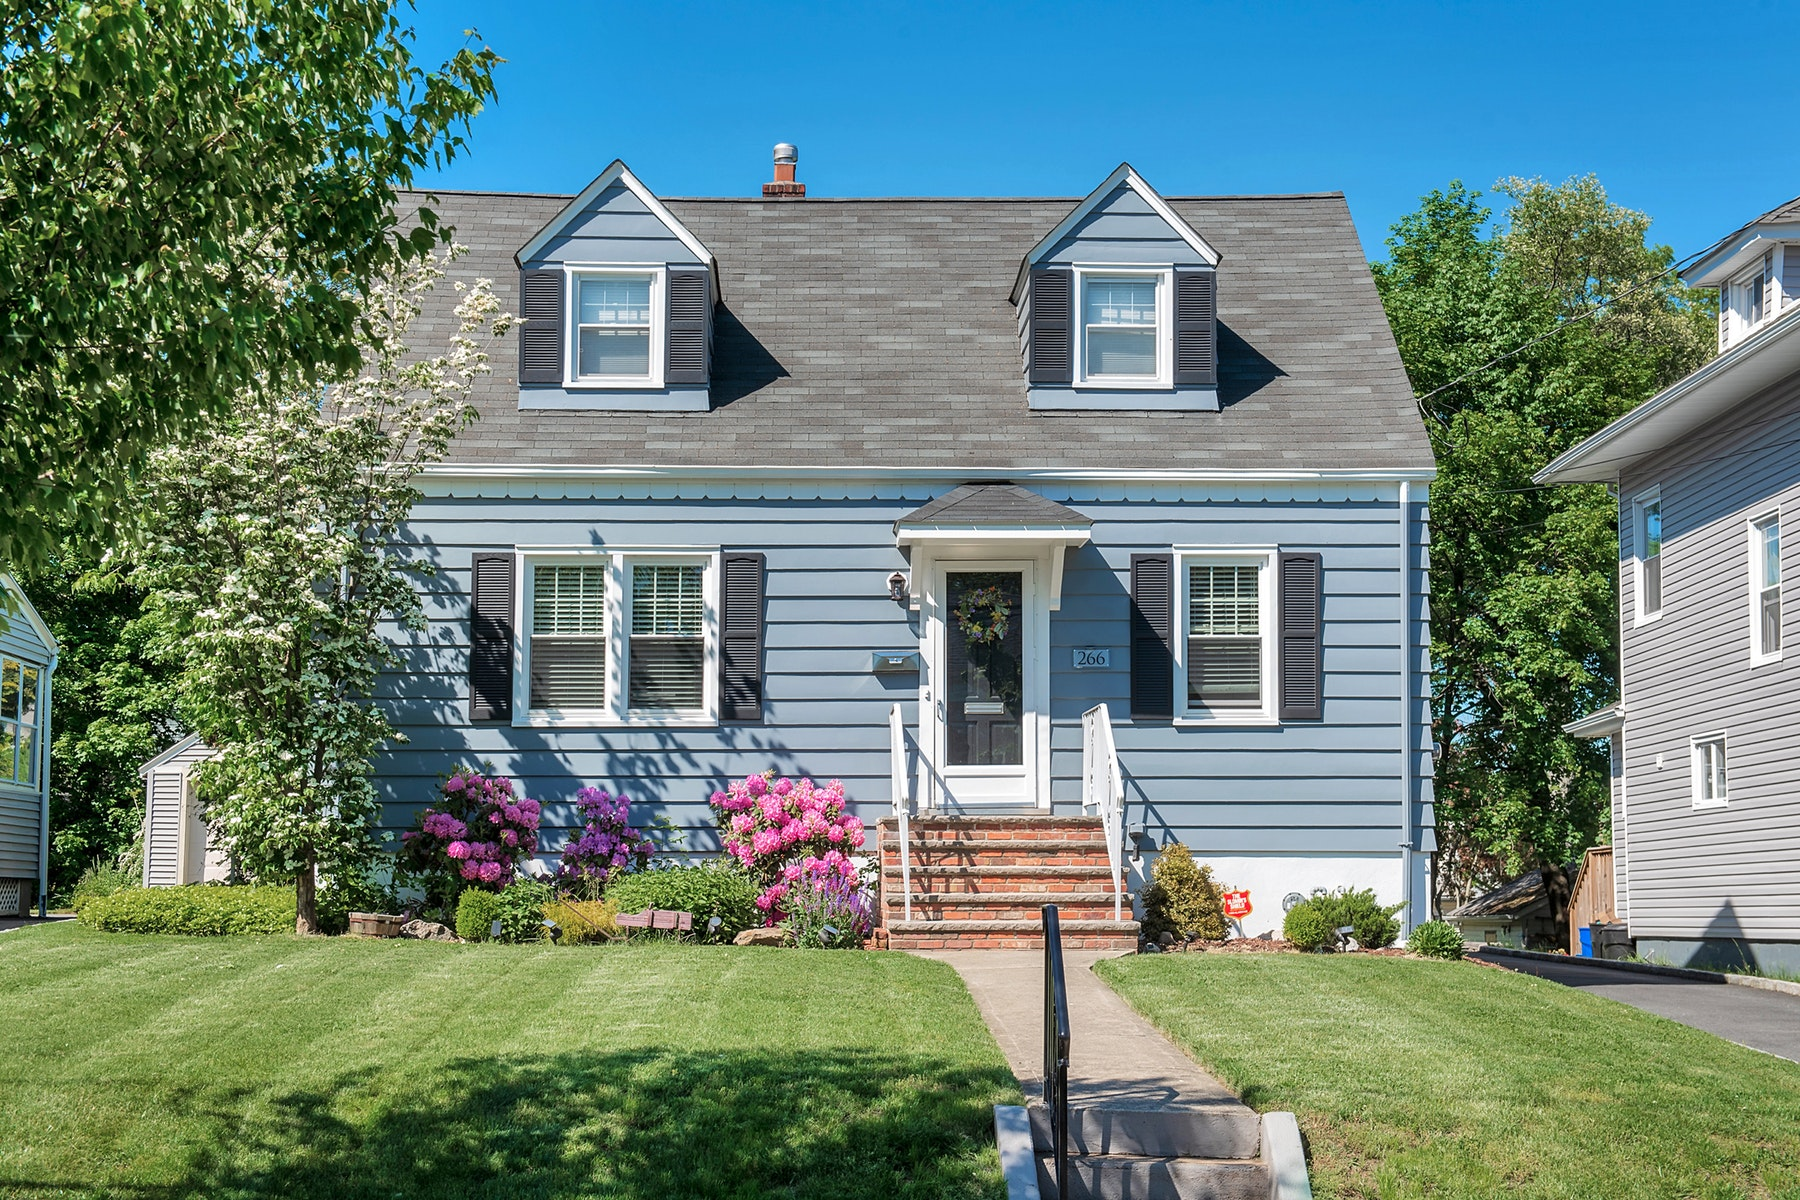 Single Family Homes for Sale at Charming Cape Cod 266 Linden Avenue Verona, New Jersey 07044 United States